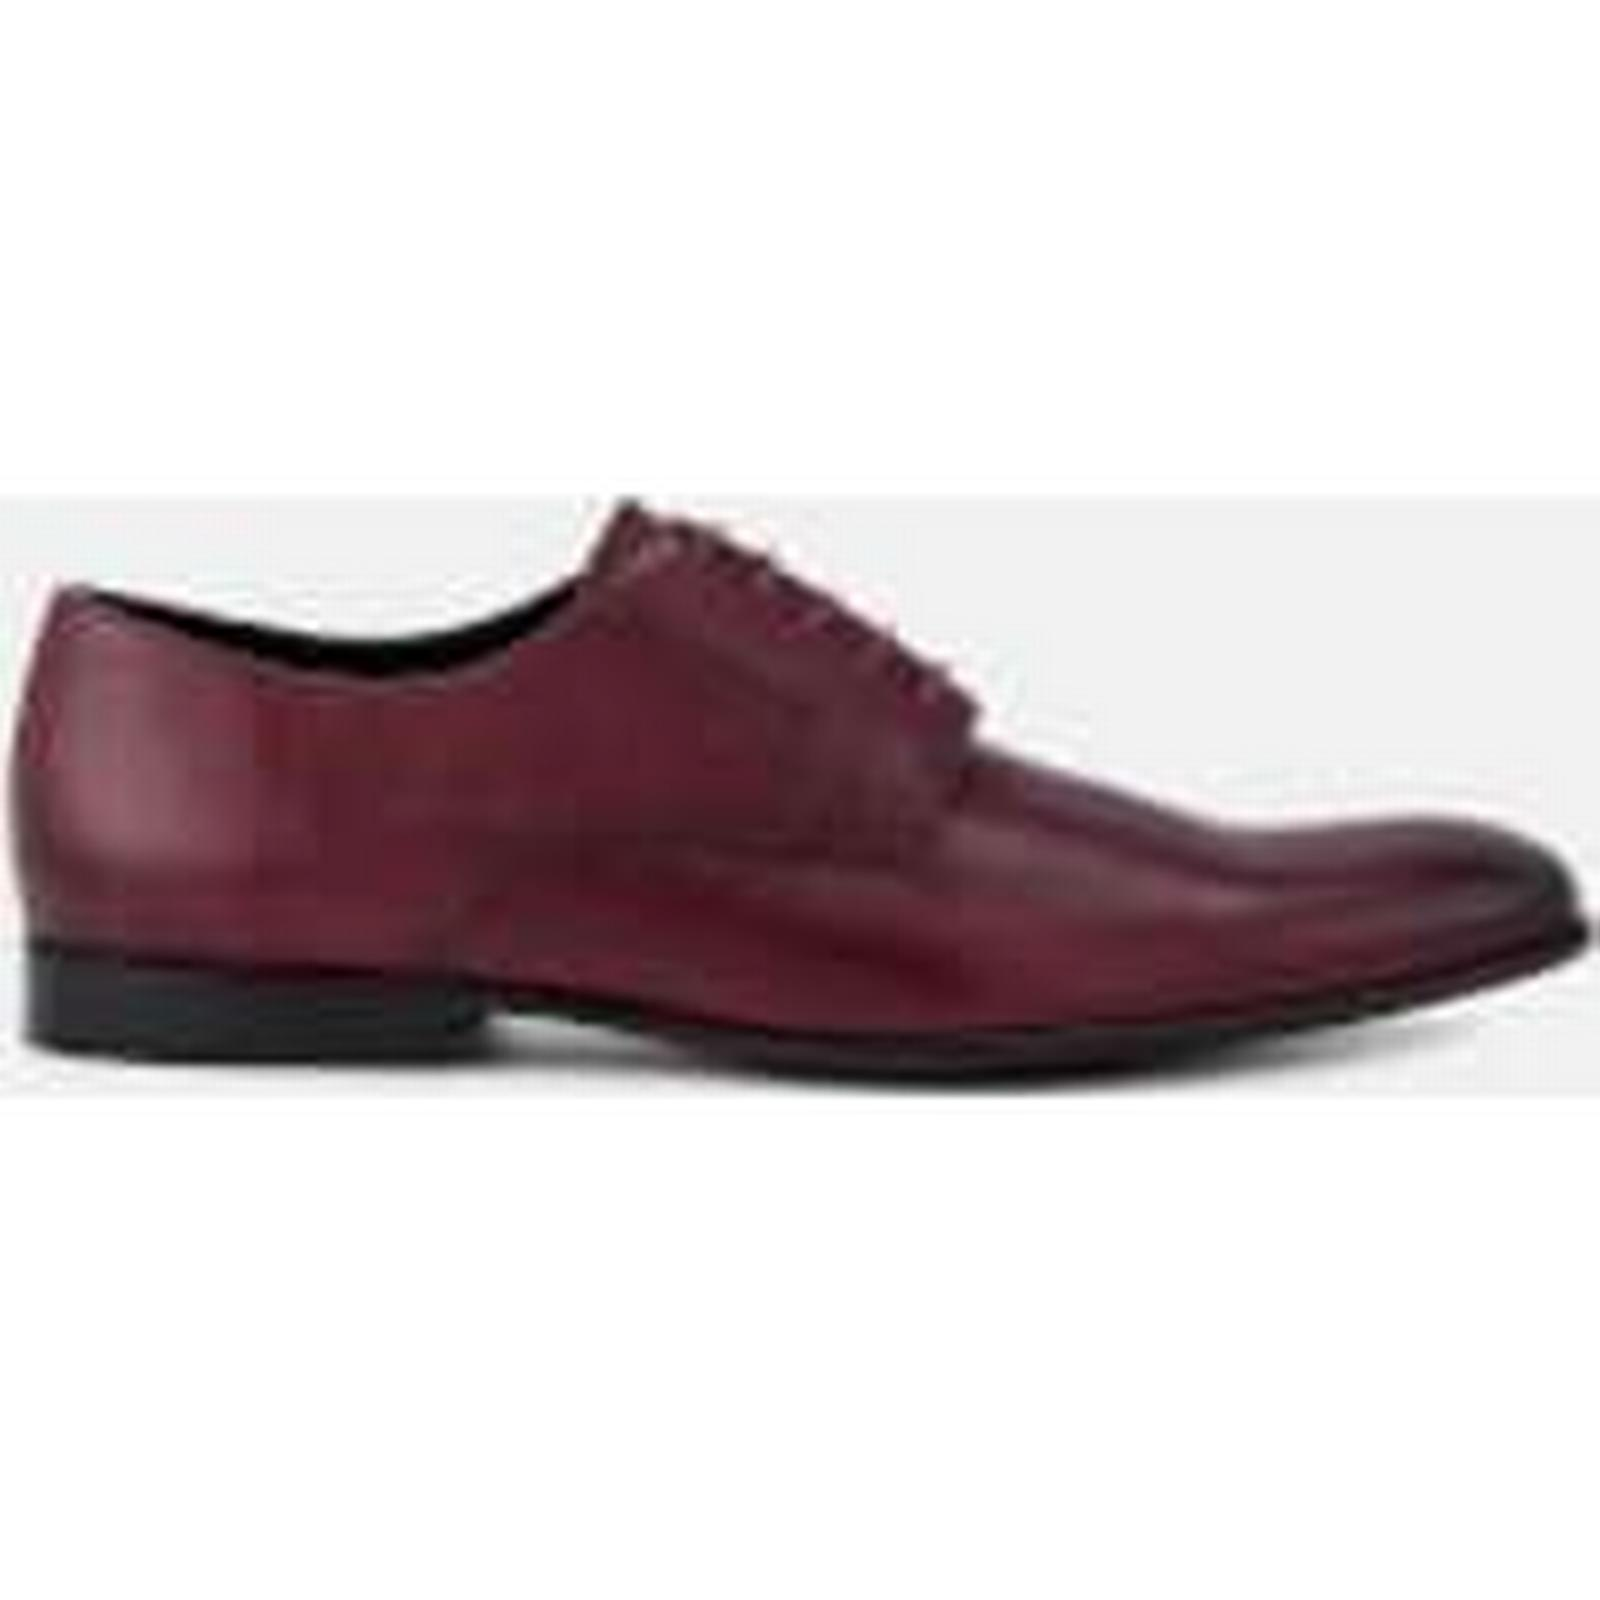 PS by Paul Smith Men's Shoes Gould Burnished Leather Oxford Shoes Men's - Burgundy e4e56e